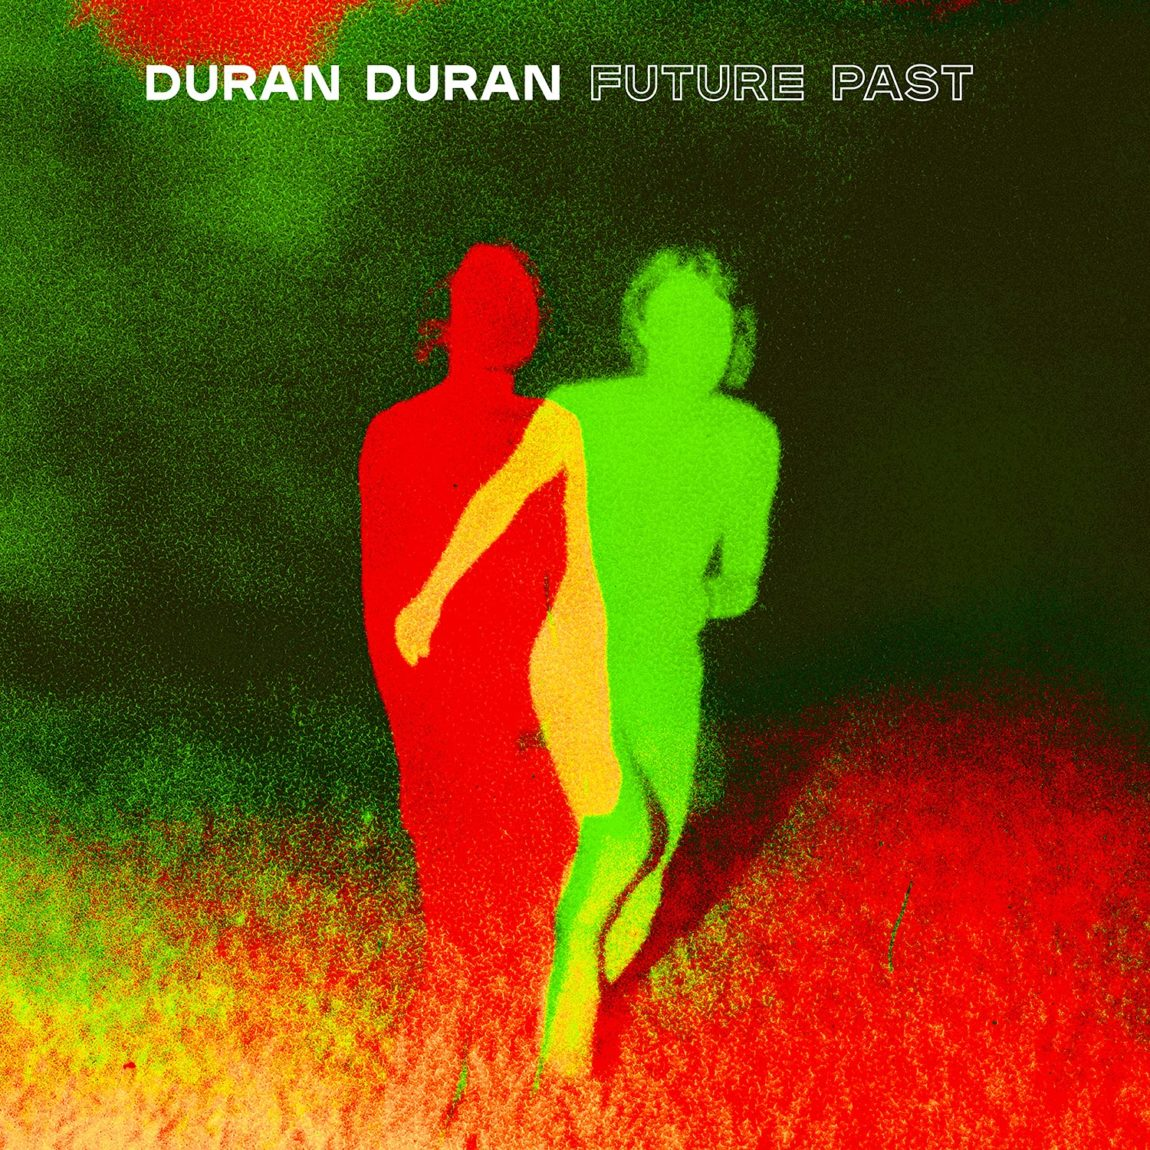 Duran Duran - Future Past - Available Oct 22, 2021